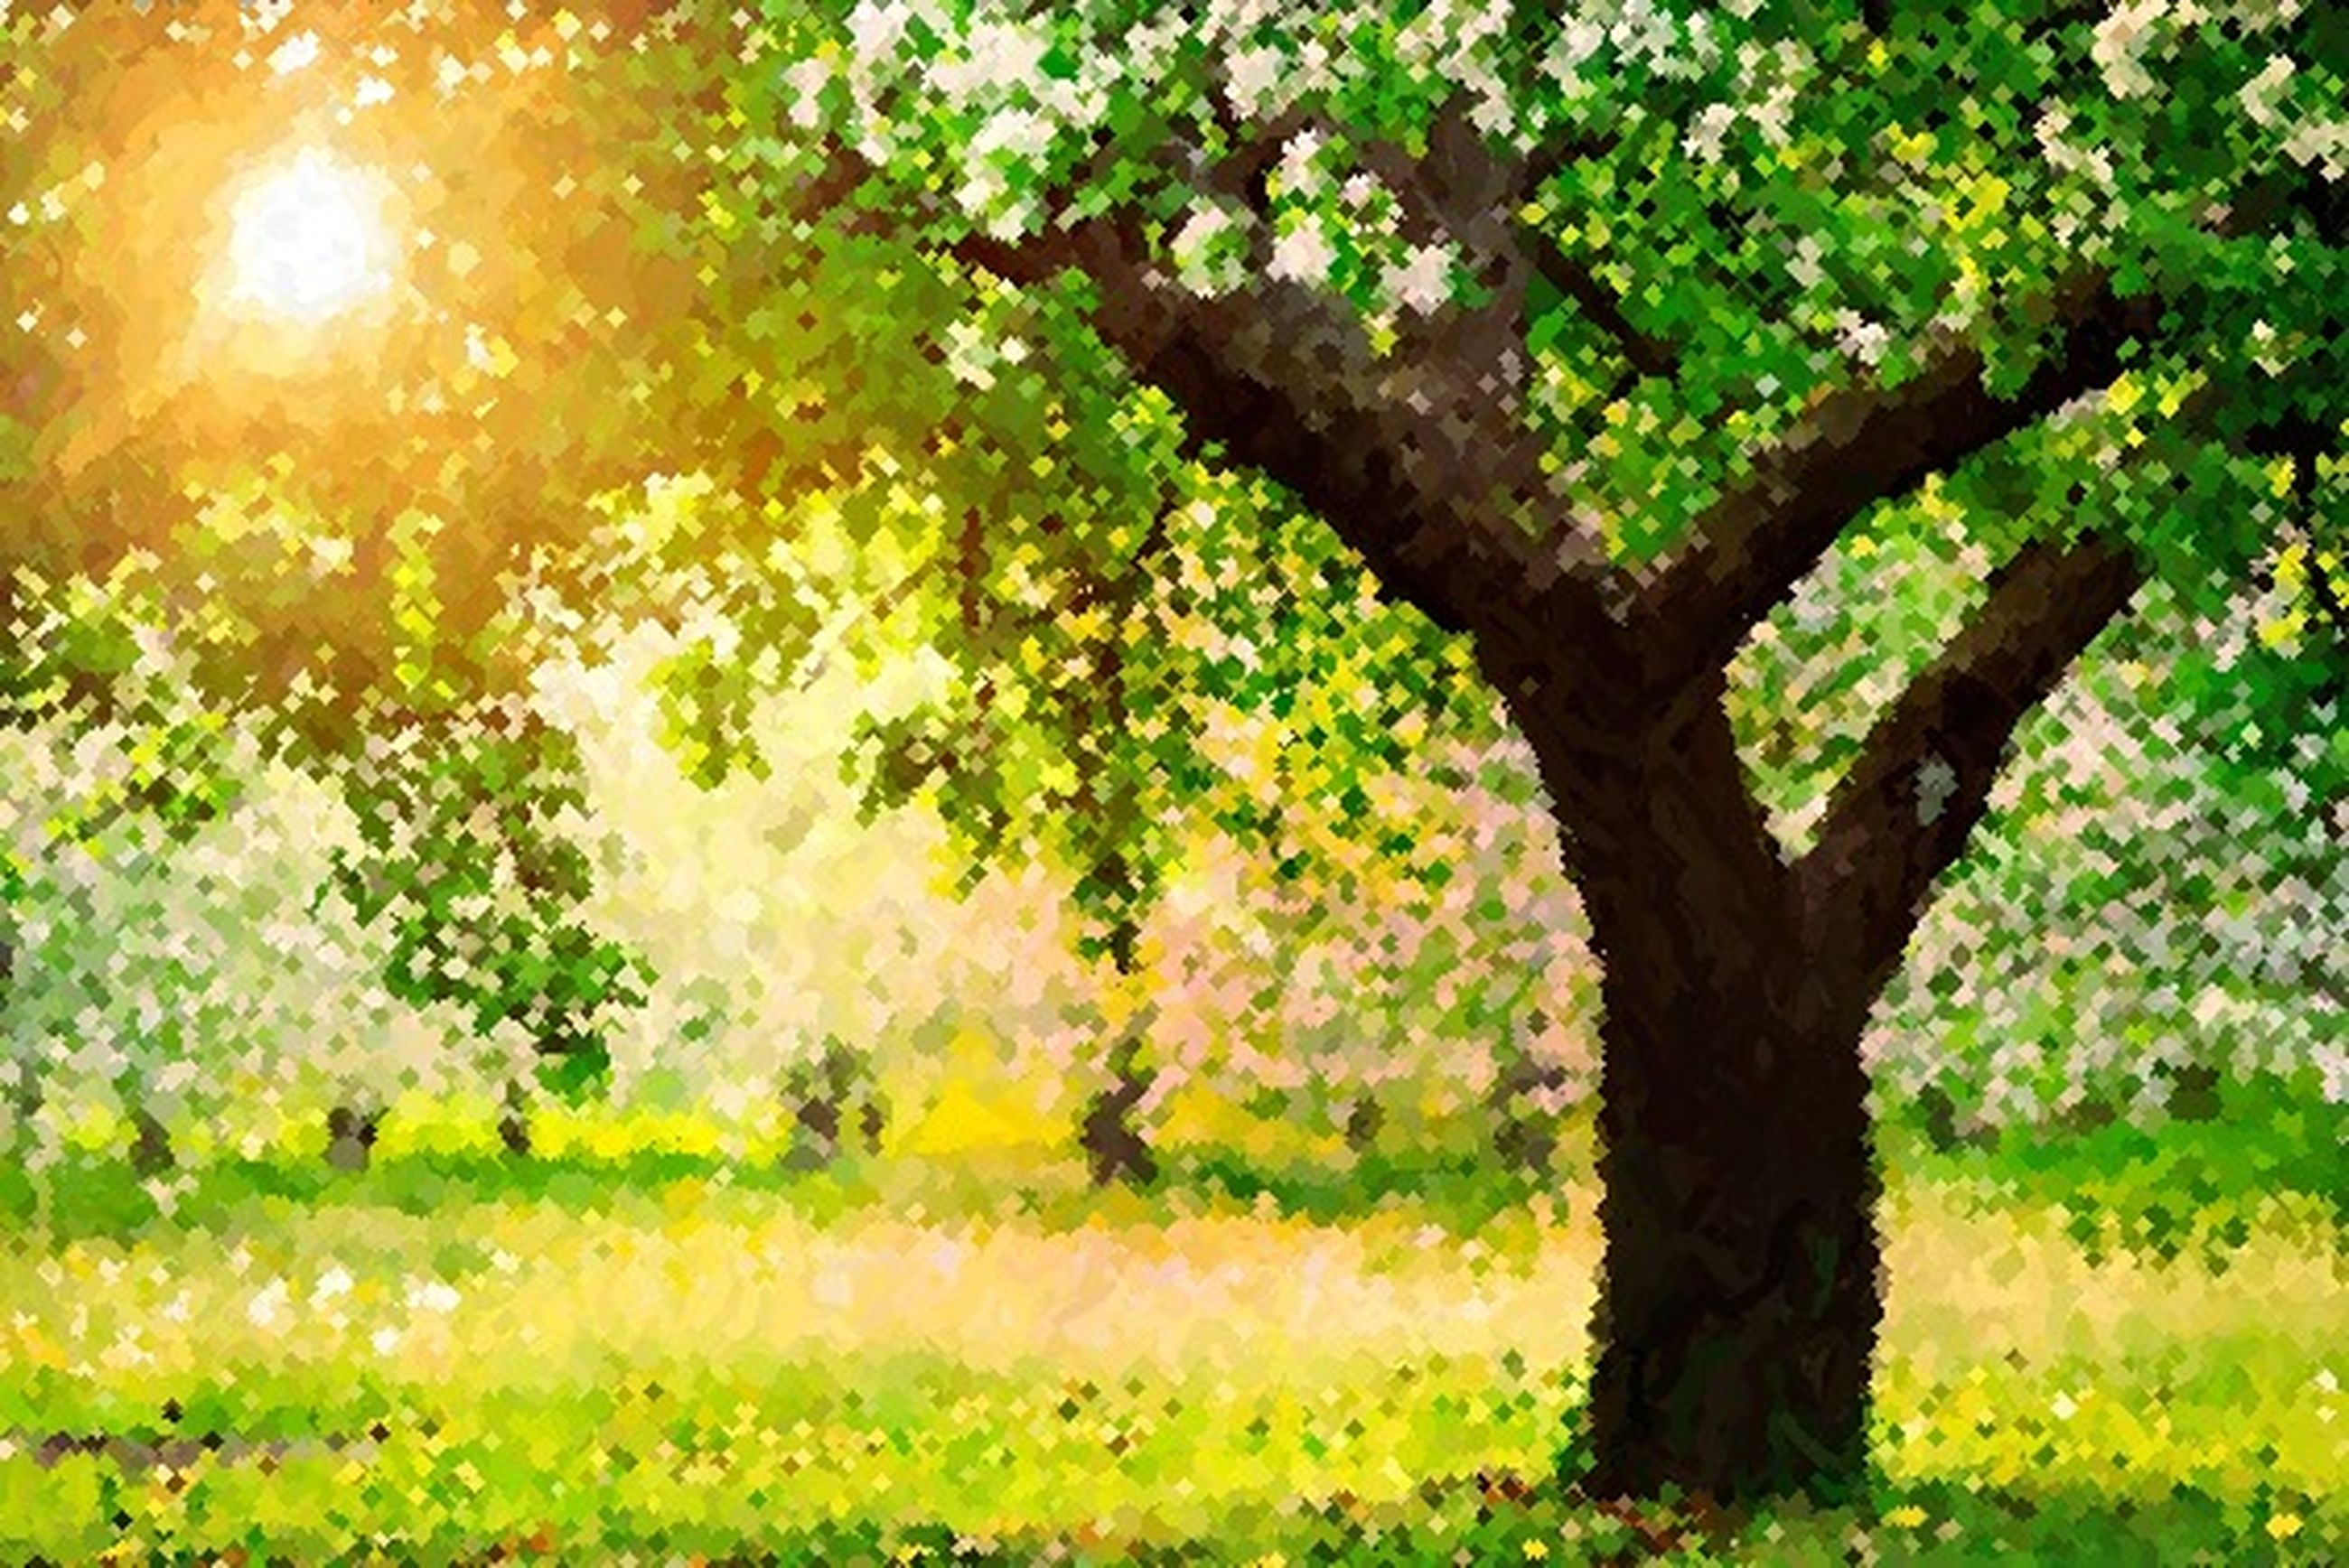 tree, growth, tranquility, nature, green color, beauty in nature, branch, sunlight, grass, tranquil scene, field, scenics, tree trunk, plant, growing, sun, day, outdoors, no people, leaf